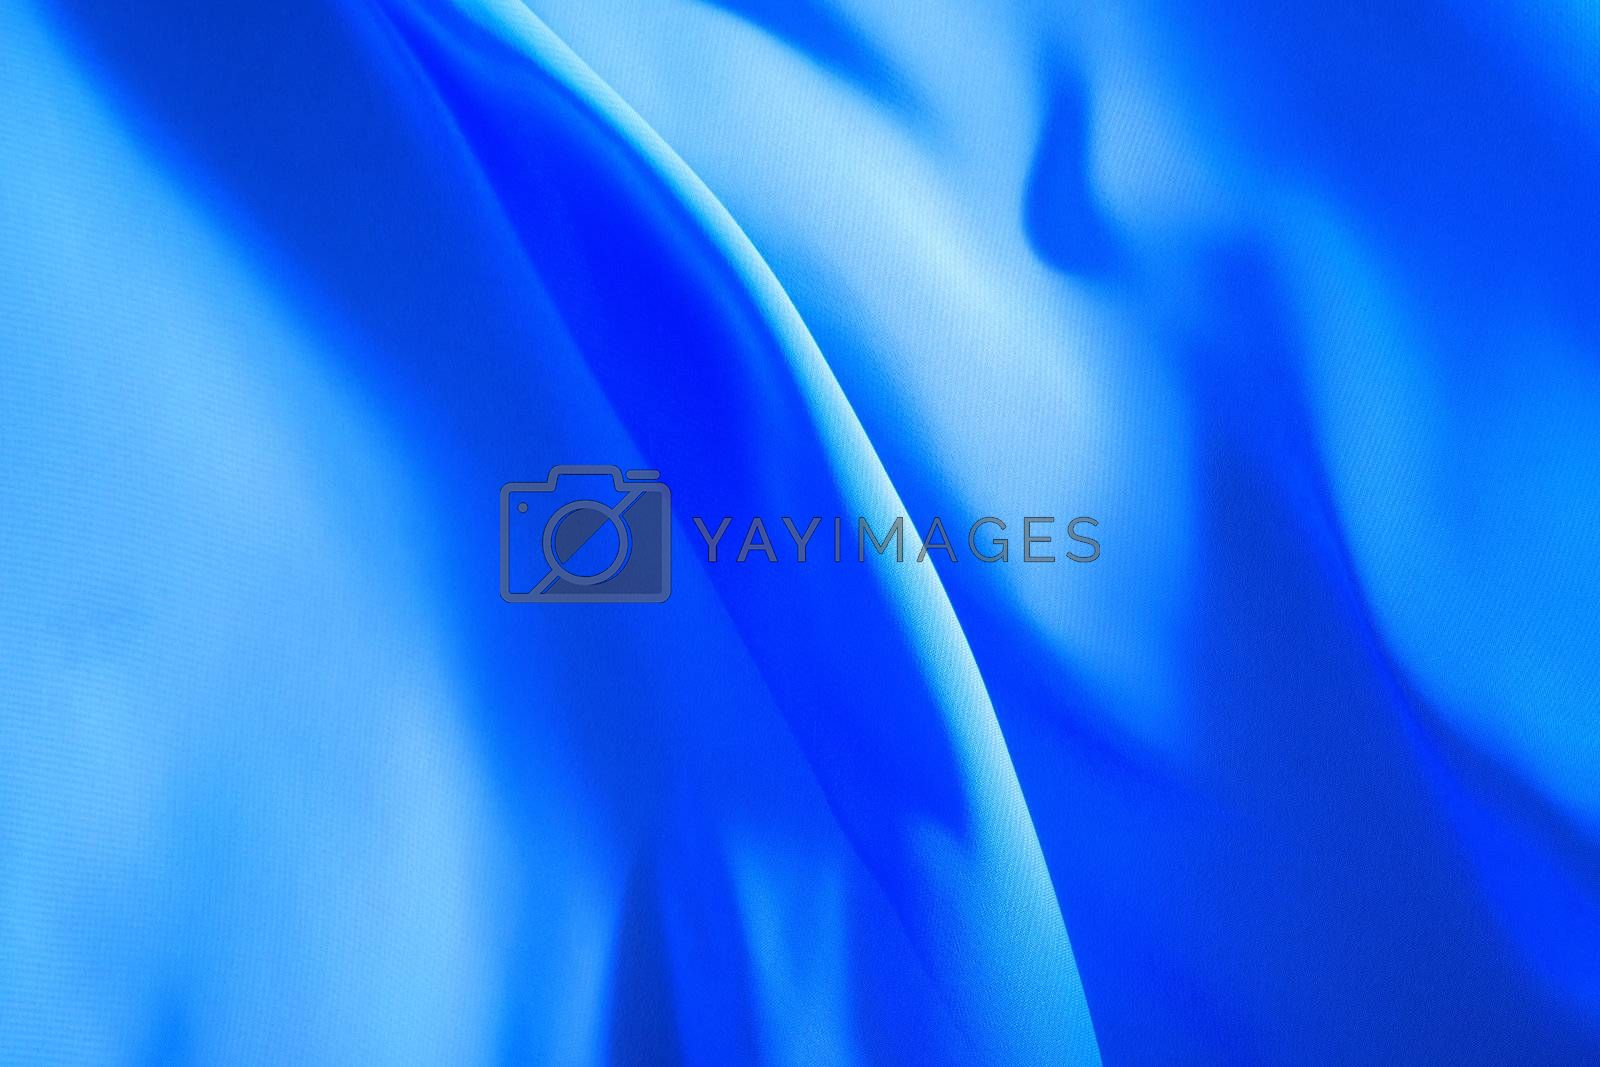 blue fabric winds waves, creating a beautiful background of the folds